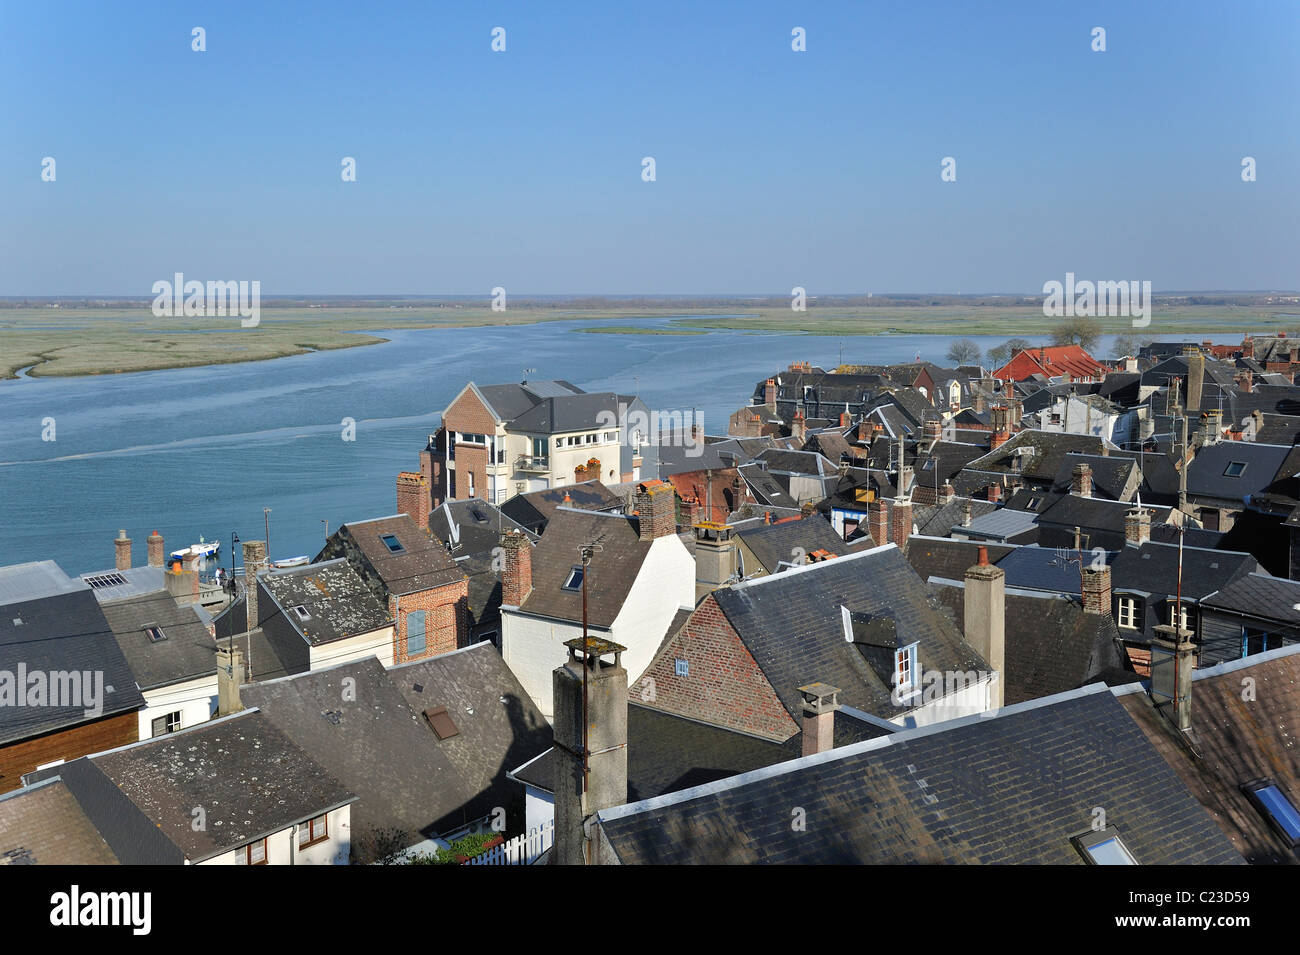 View over the town Saint-Valery-sur-Somme, Bay of the Somme, Picardy, France - Stock Image